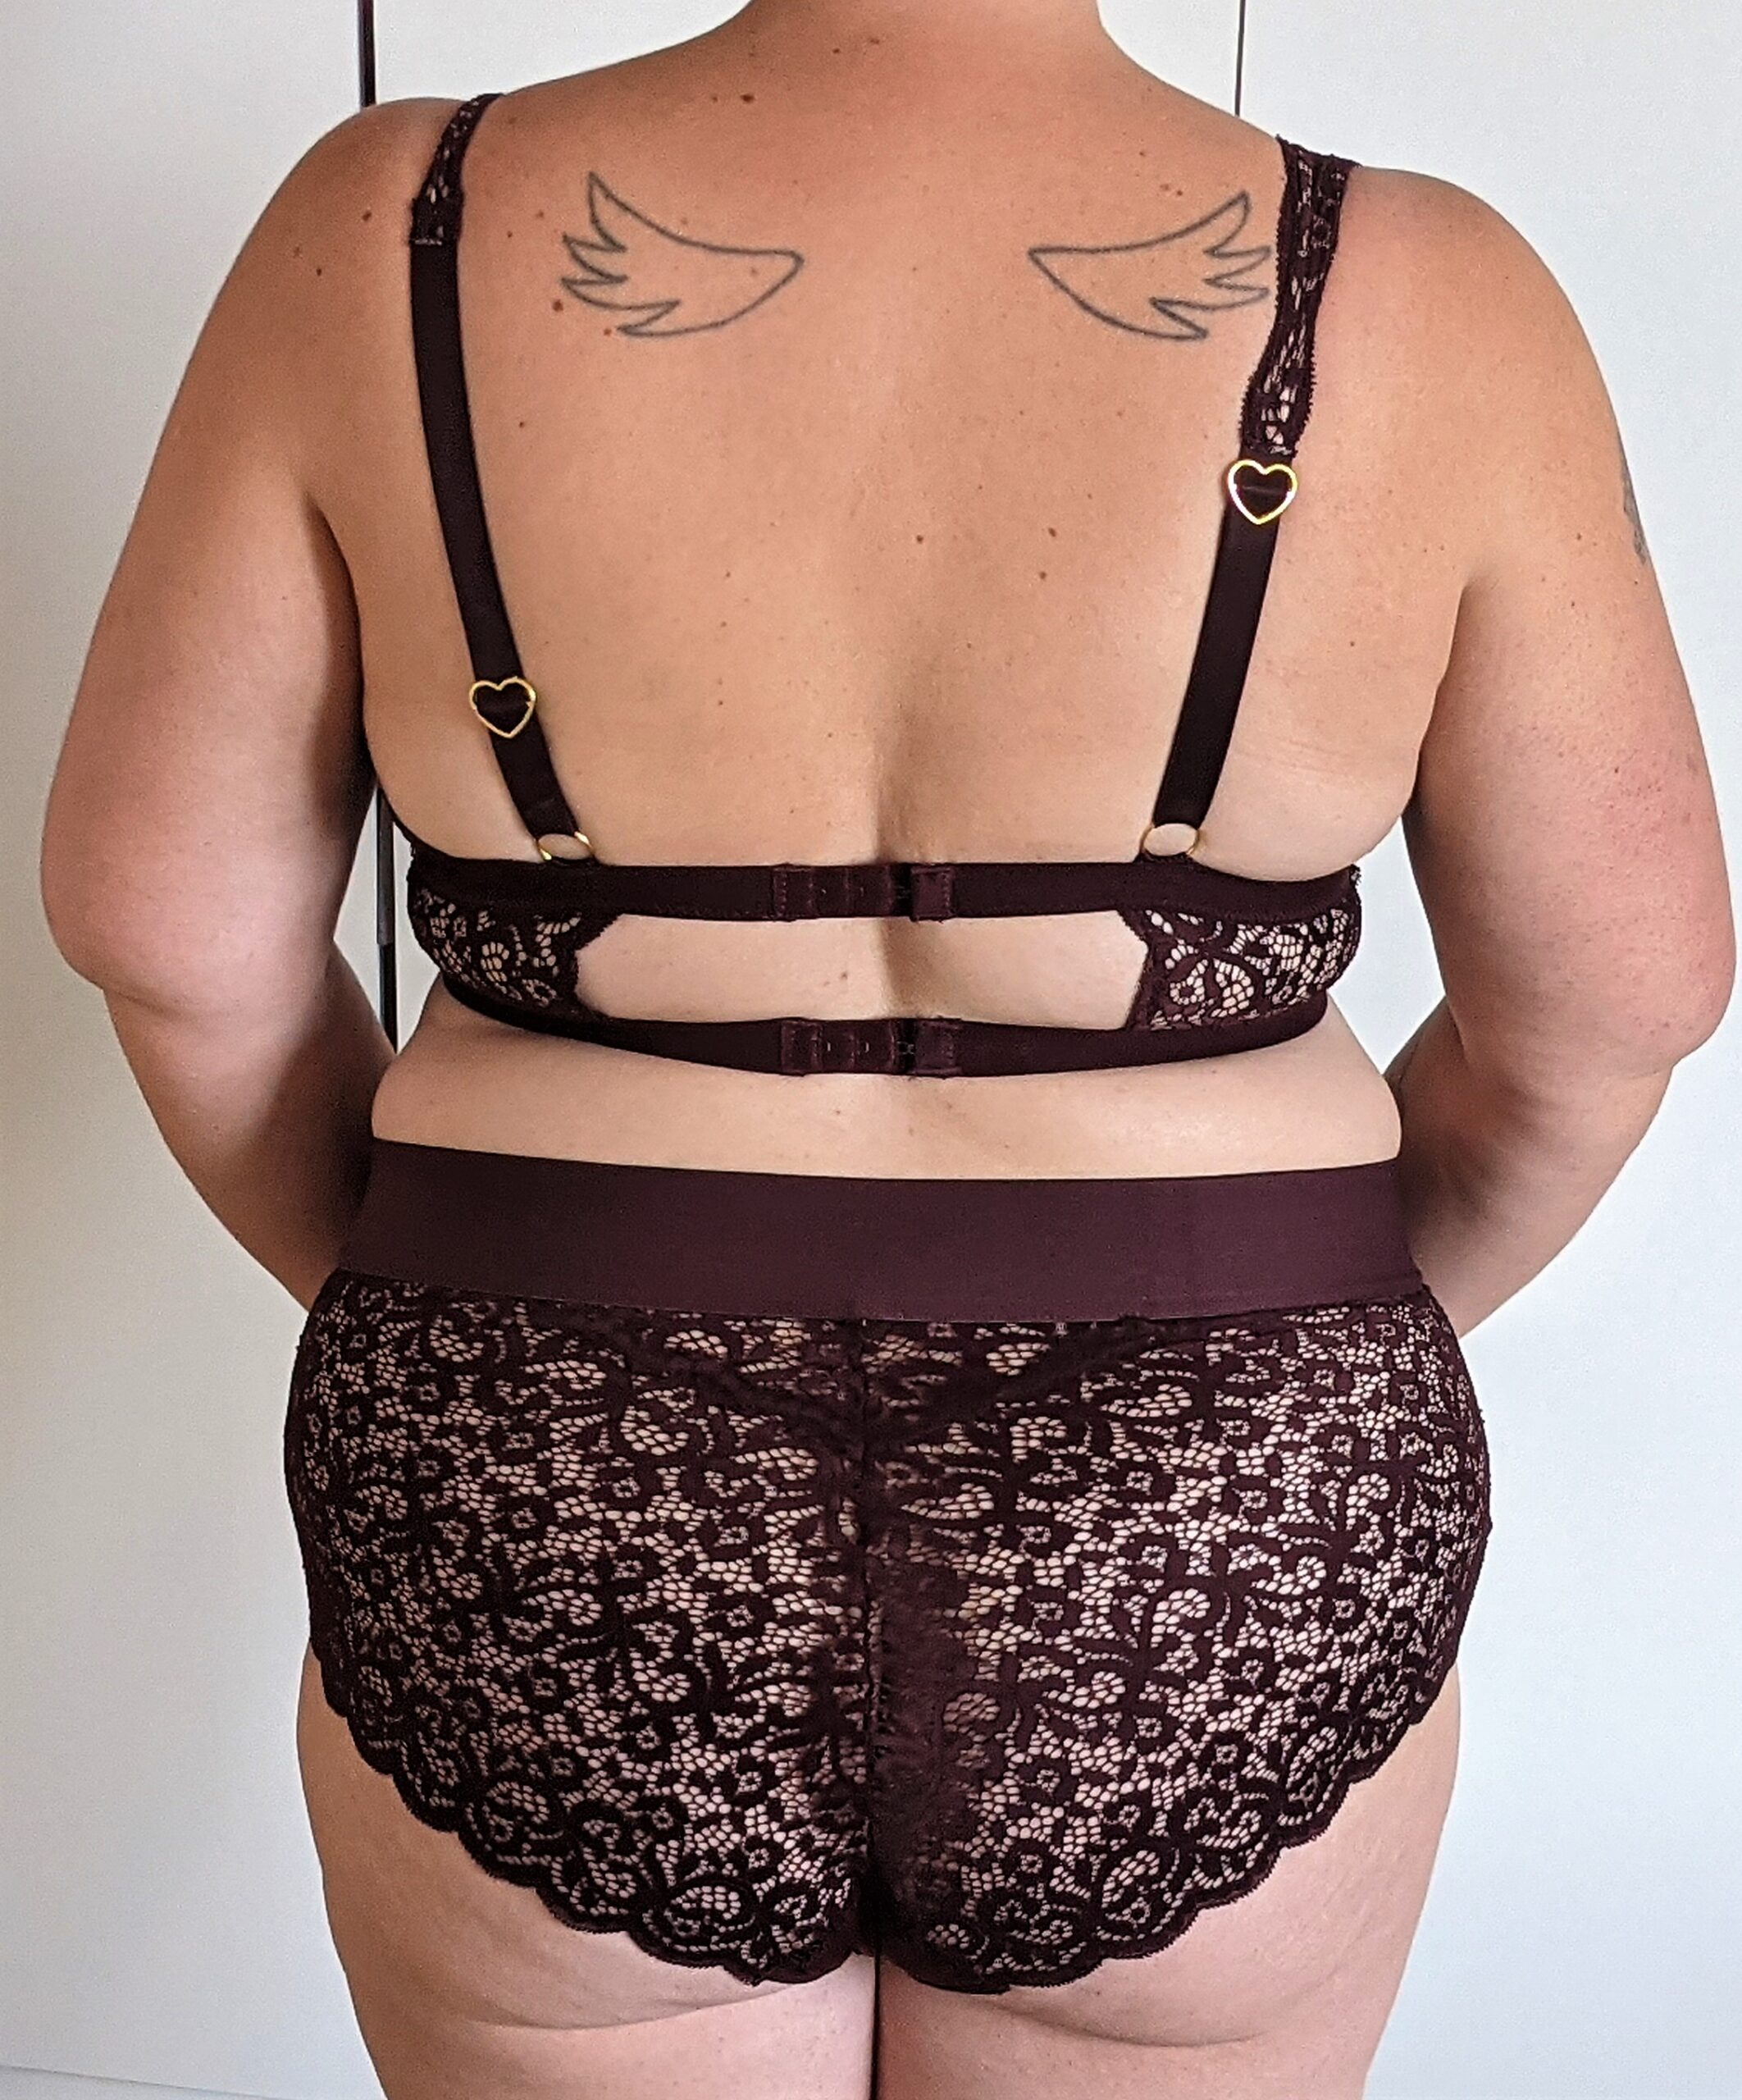 plus size lingerie from behind. lace bralette and briefs